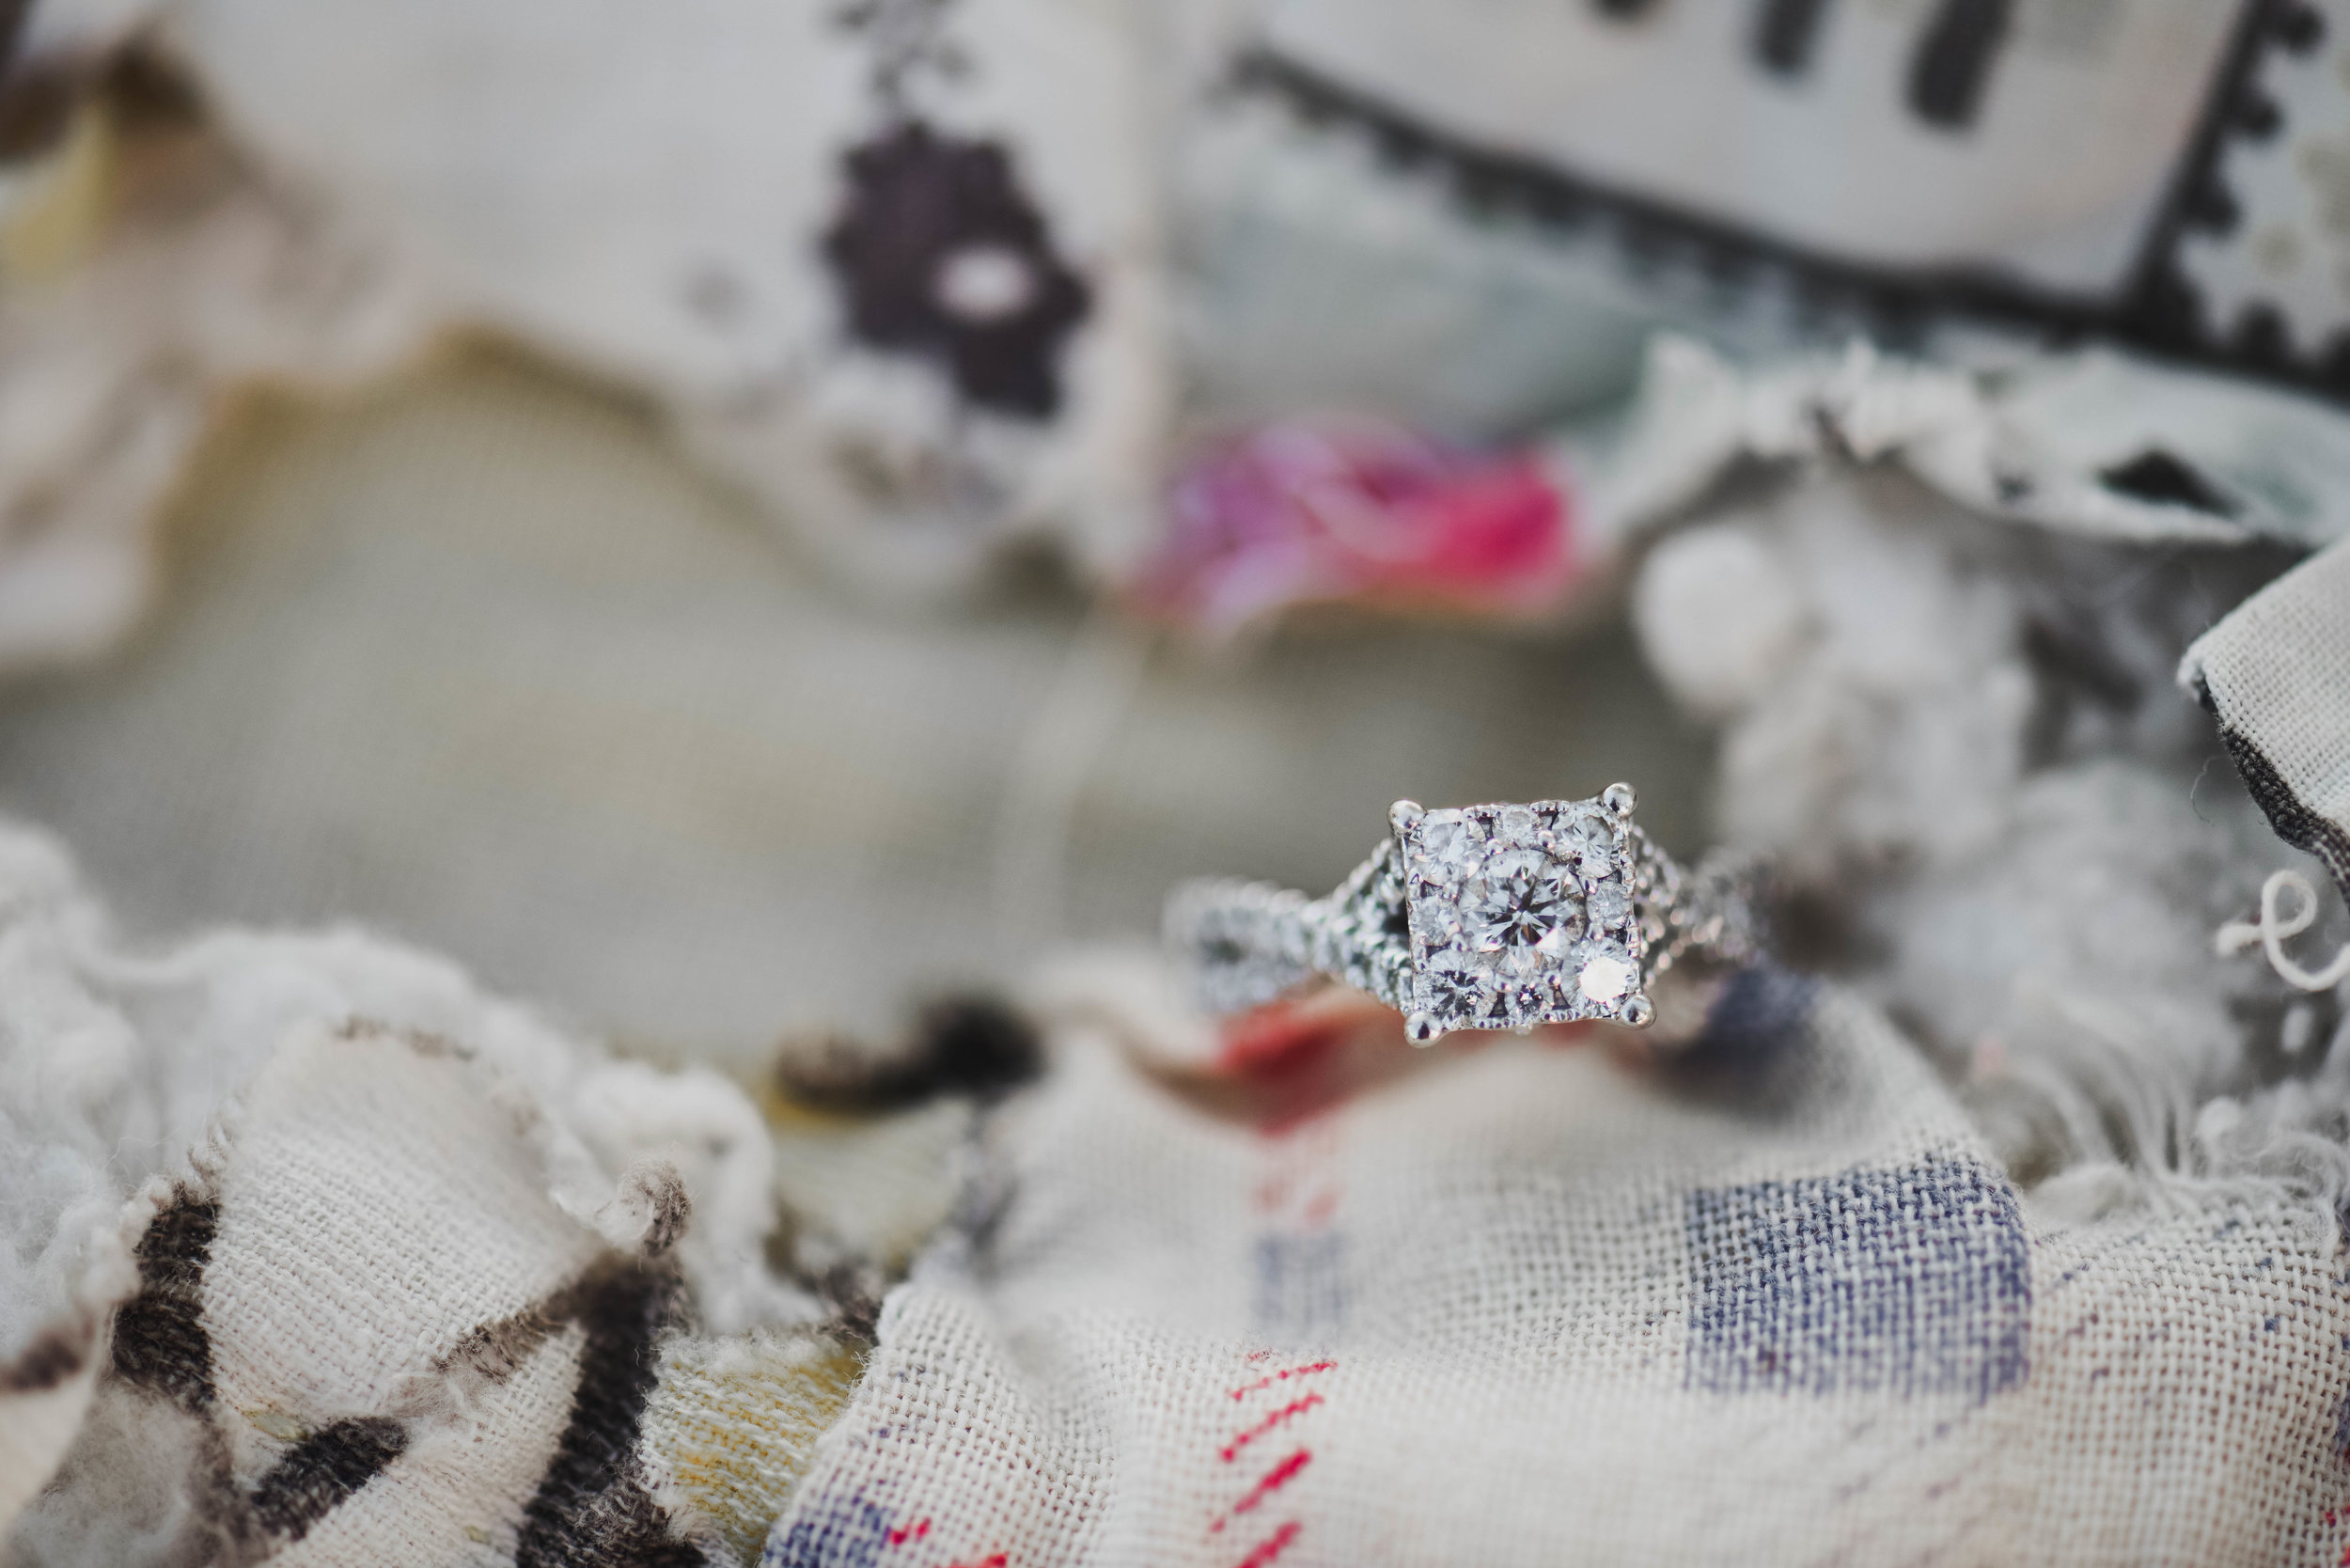 I have had so many people LOVE this ring shot. I posted it on Instagram and it has gotten tons of interaction!